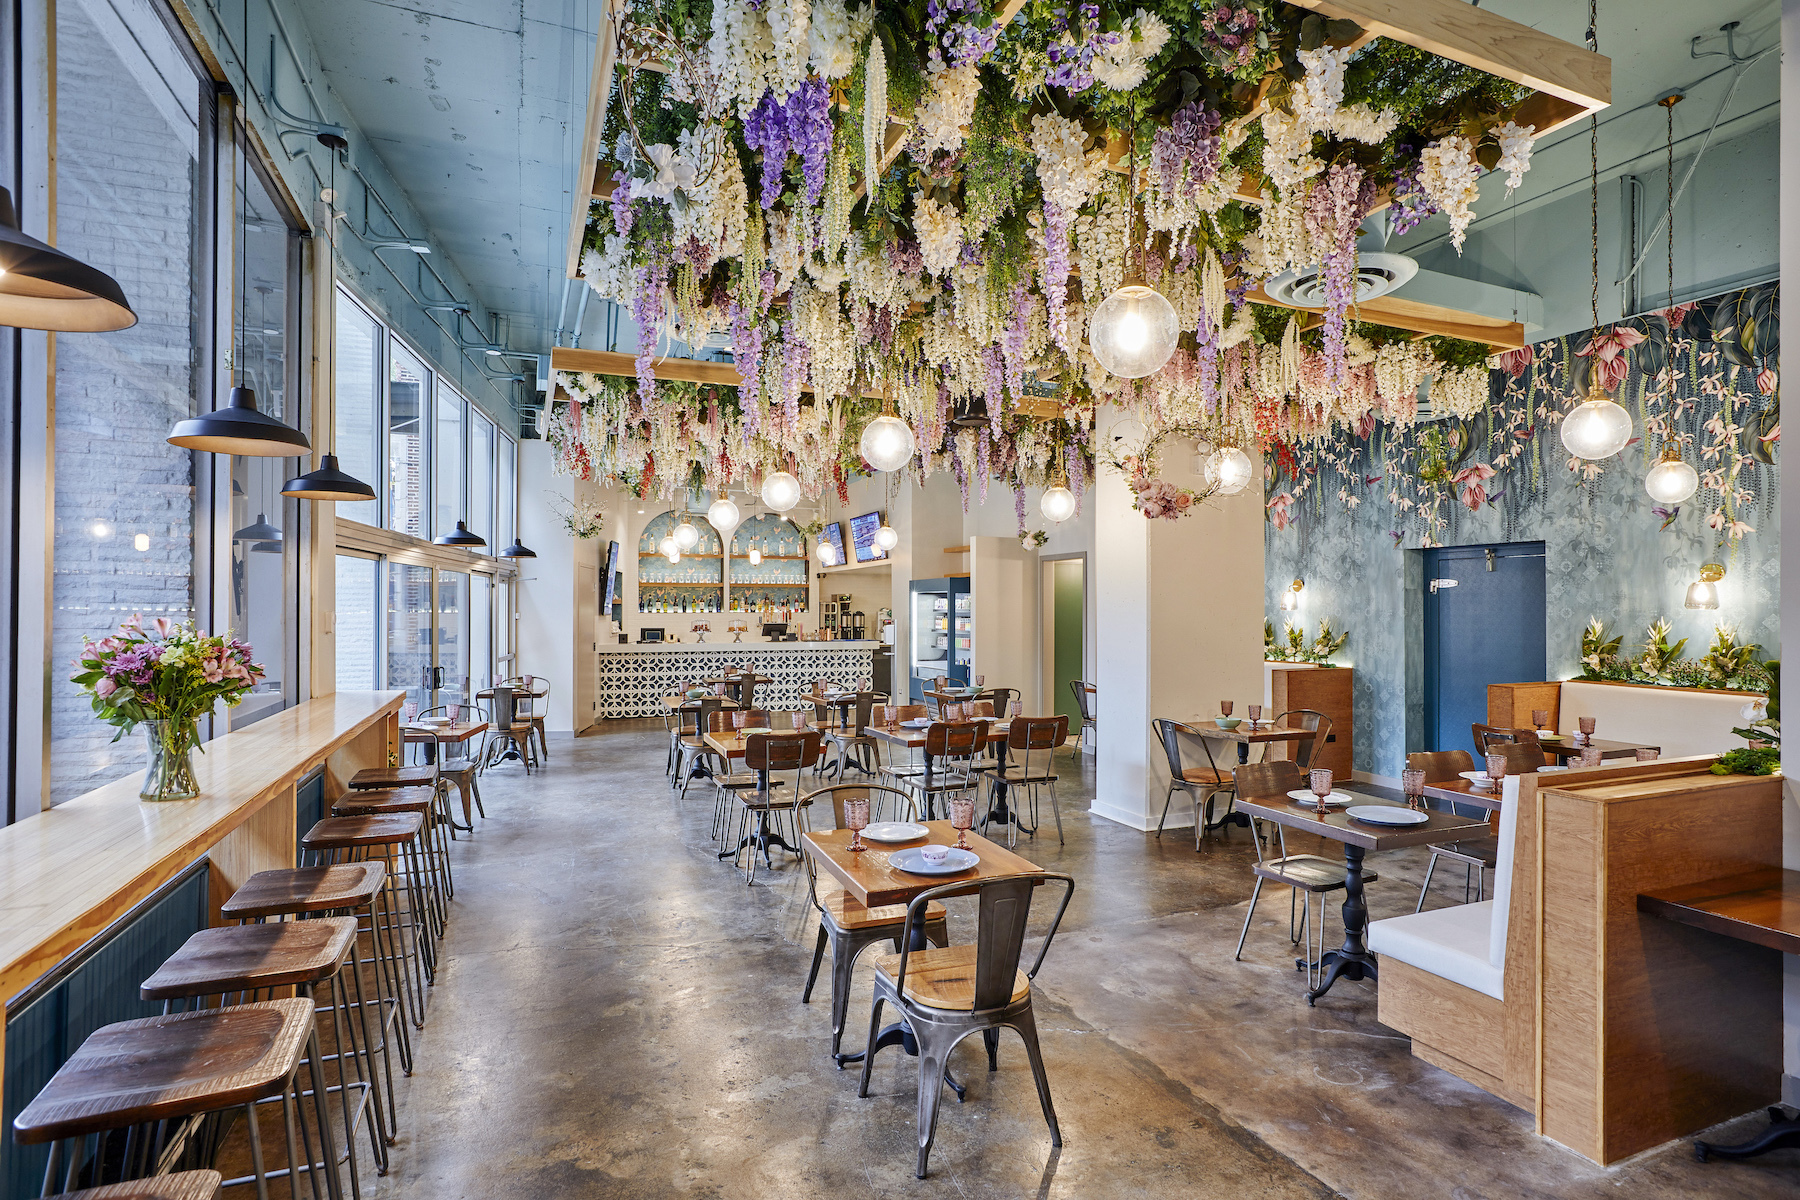 A CBD-centric brunch spot opens with ube pancakes and bubble waffles